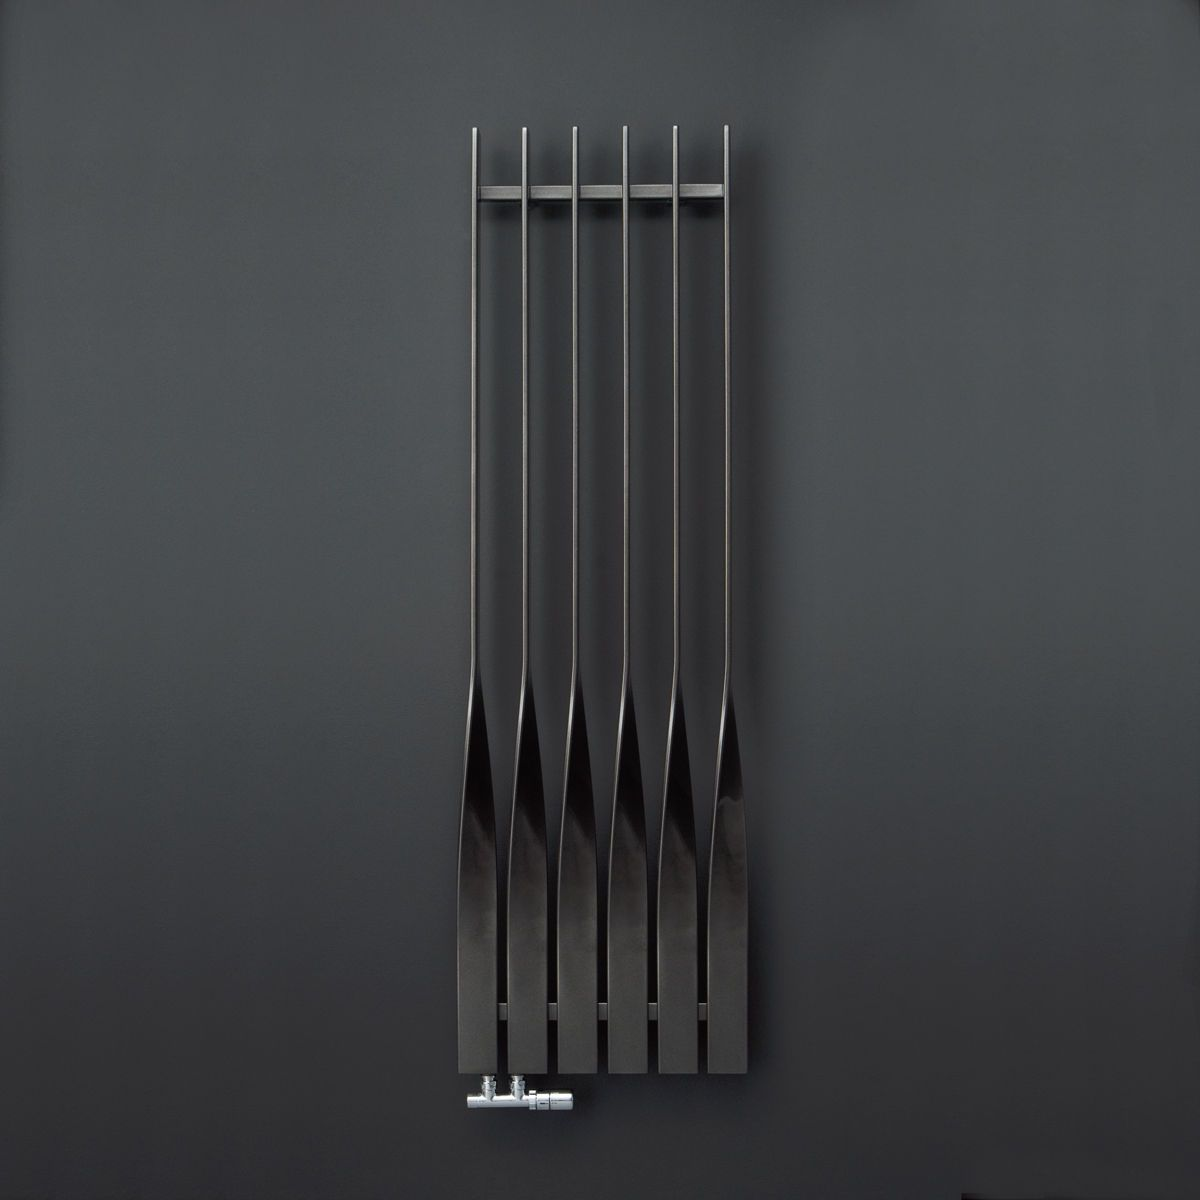 radiateur eau chaude vertical design original. Black Bedroom Furniture Sets. Home Design Ideas